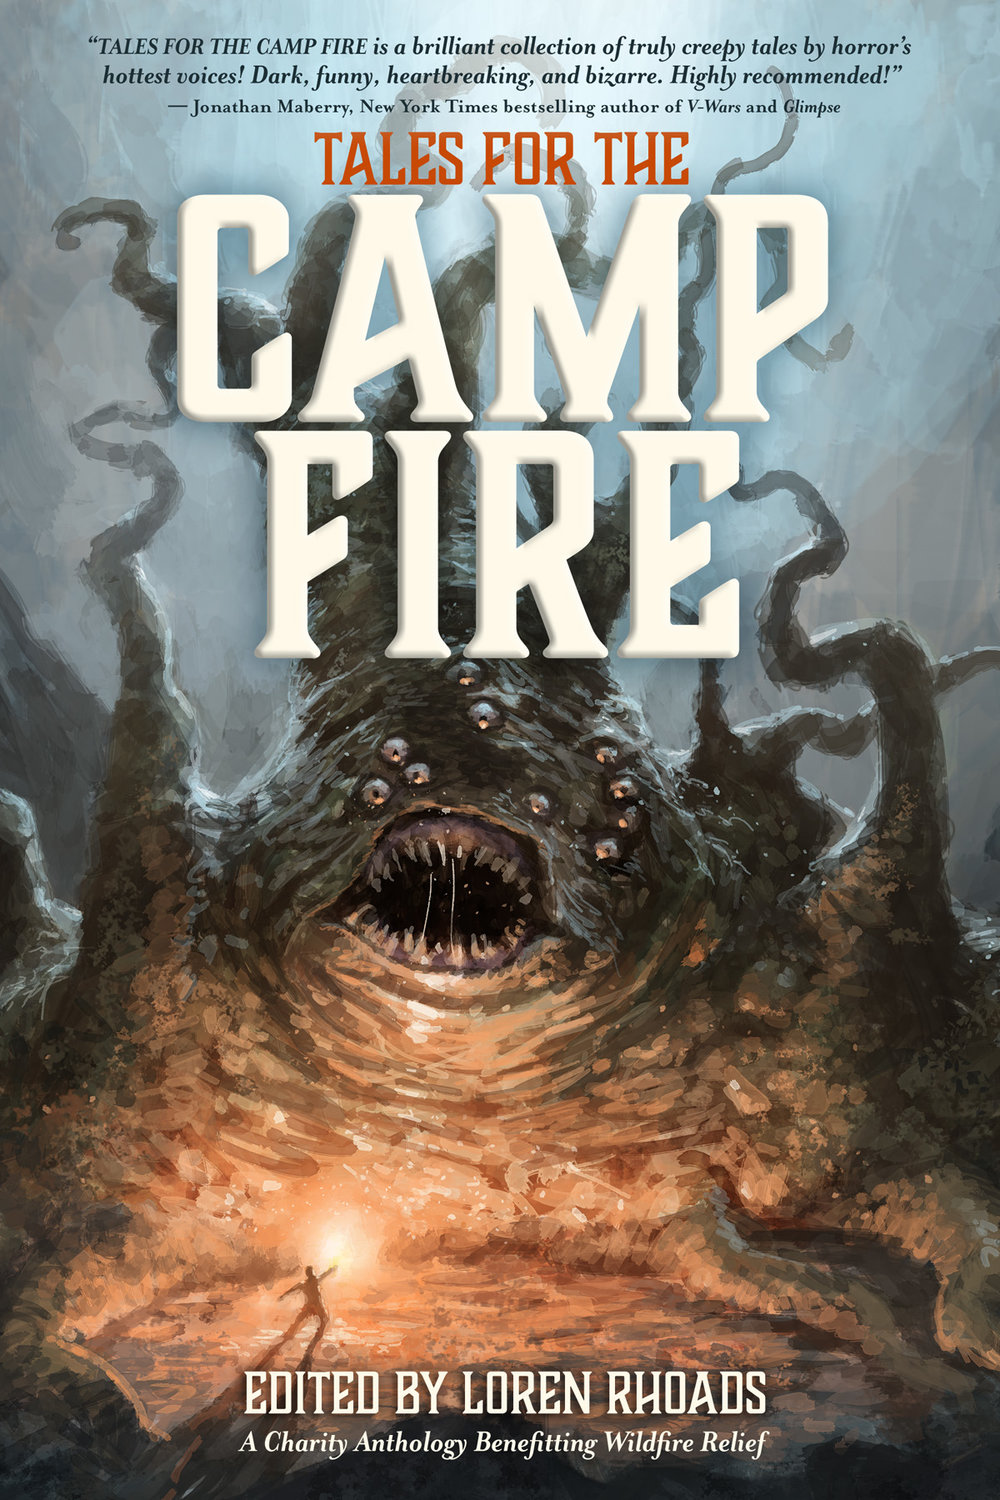 tales-for-the-camp-fire-charity-anthology.jpg